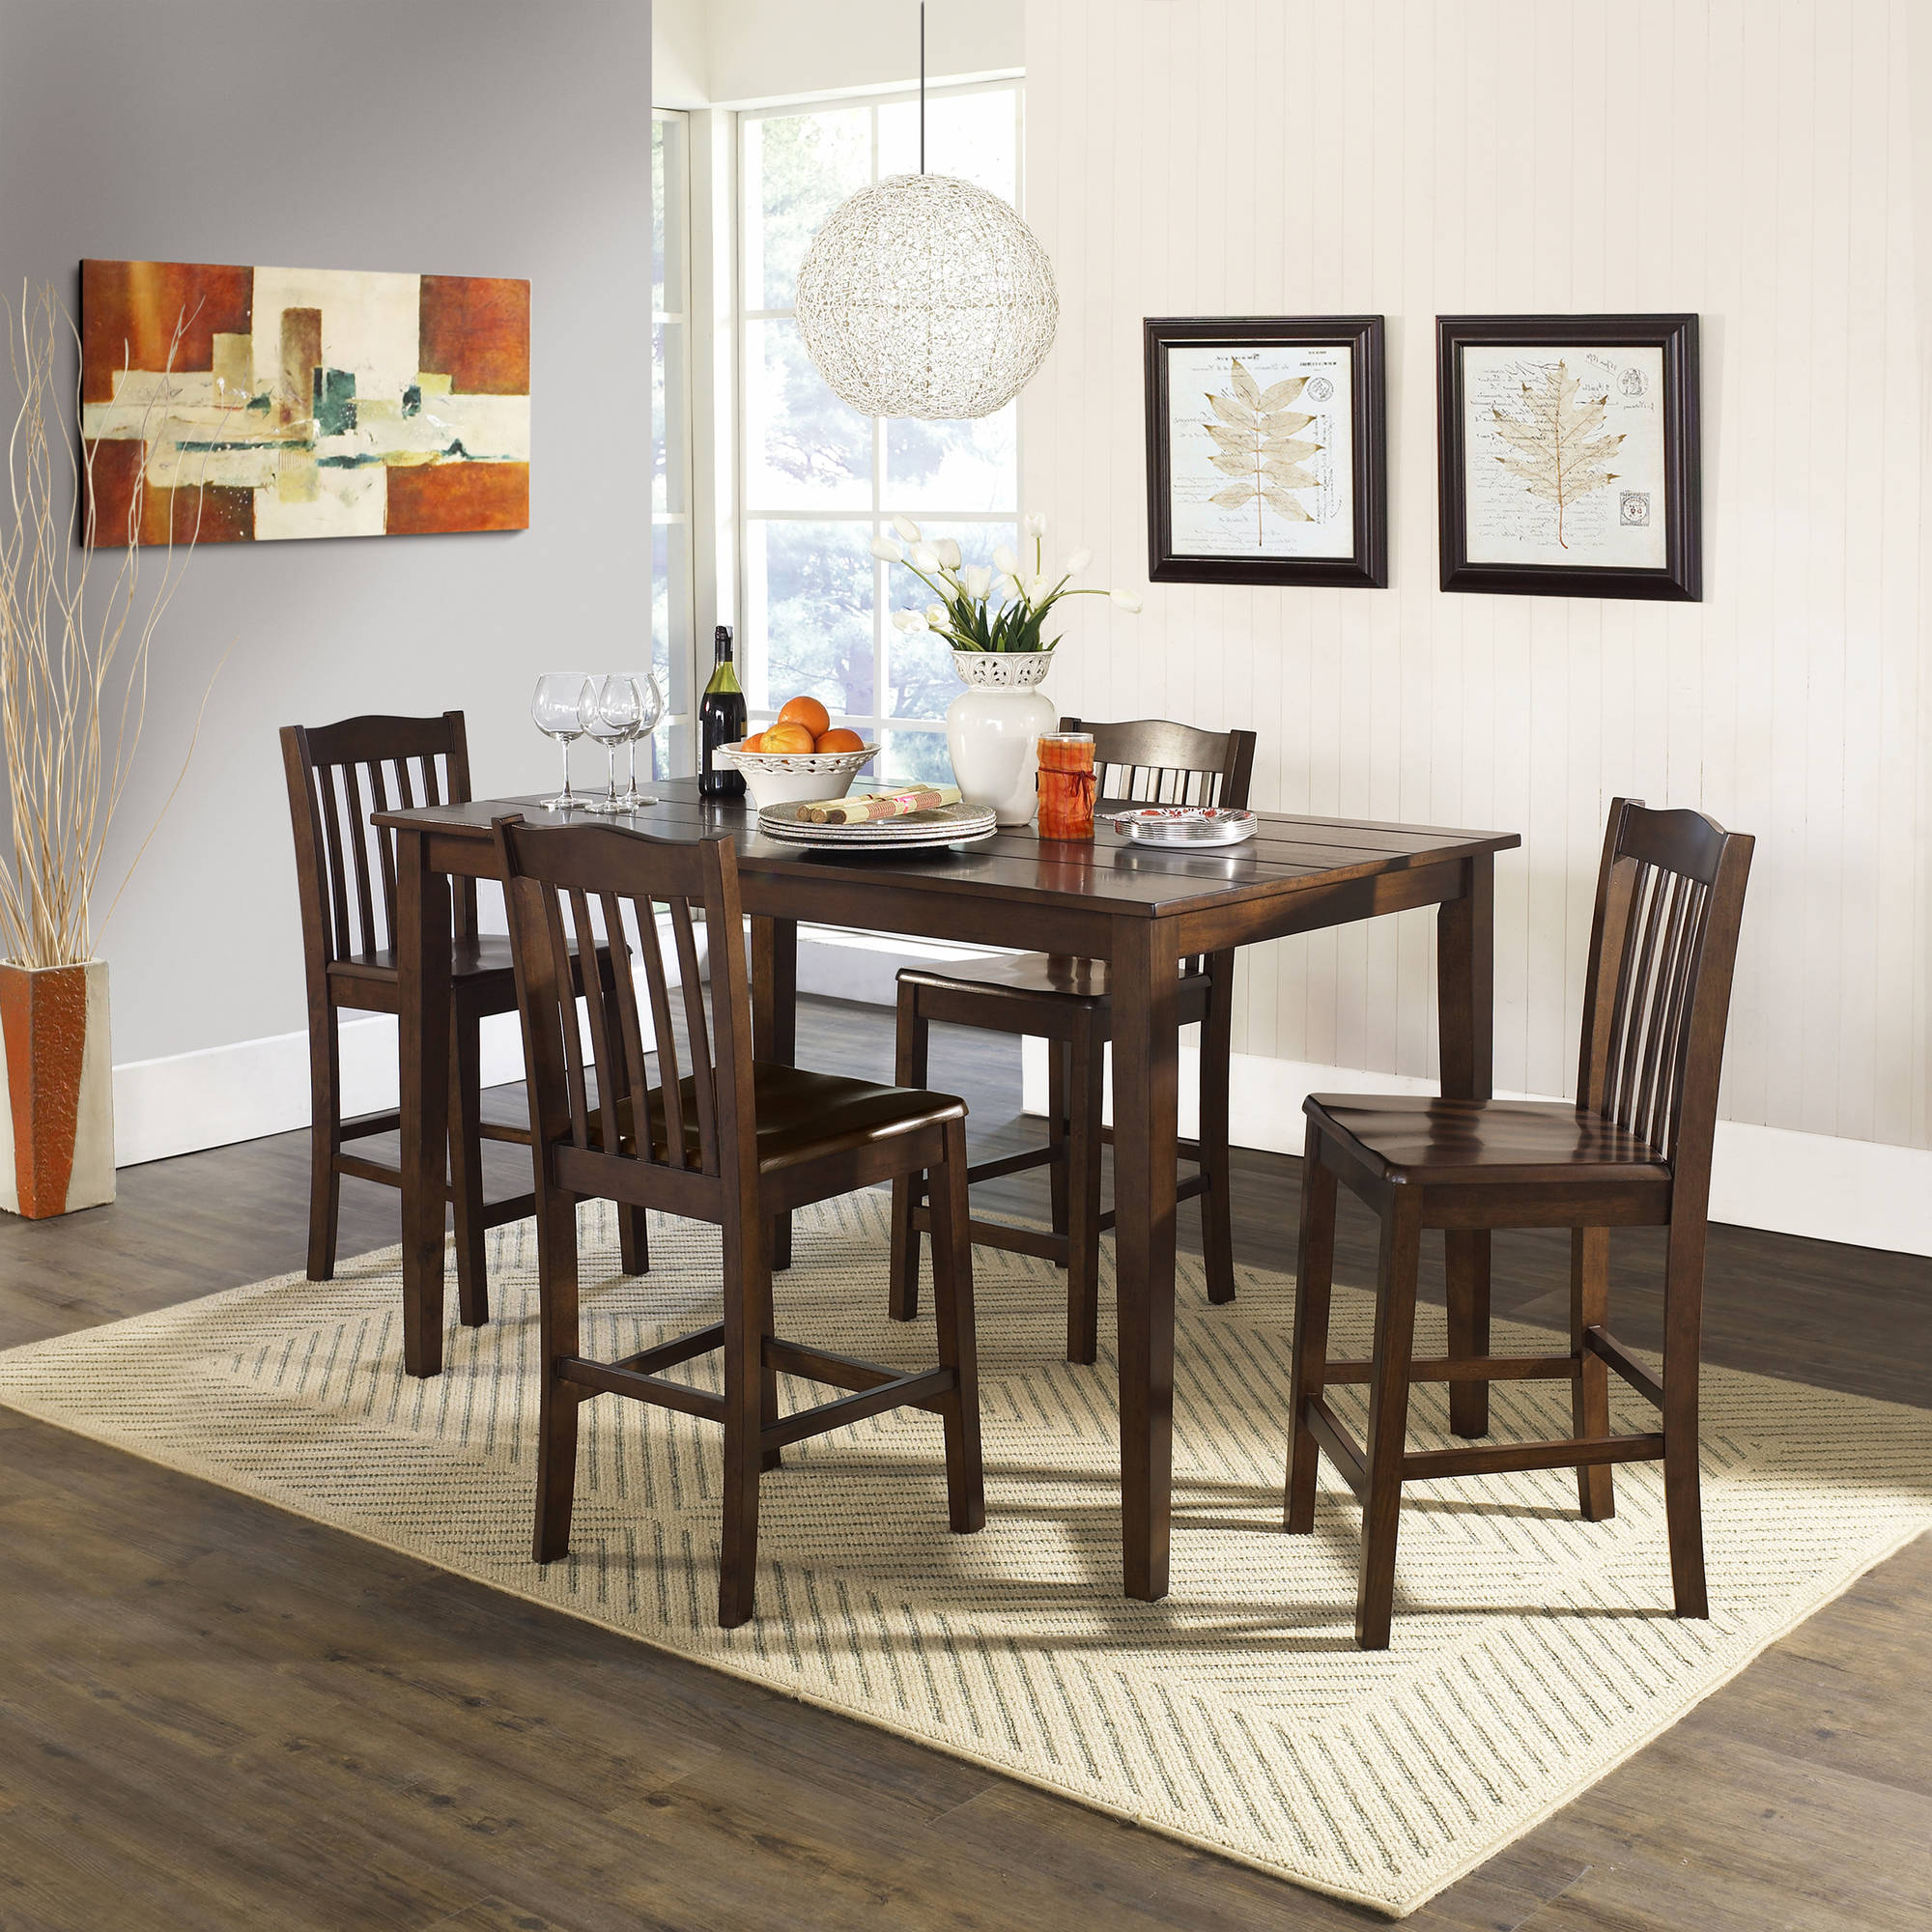 Trendy 5 Piece Baxter Dining Set With Storage Ottoman, Multiple Colors Inside Anette 3 Piece Counter Height Dining Sets (View 20 of 25)